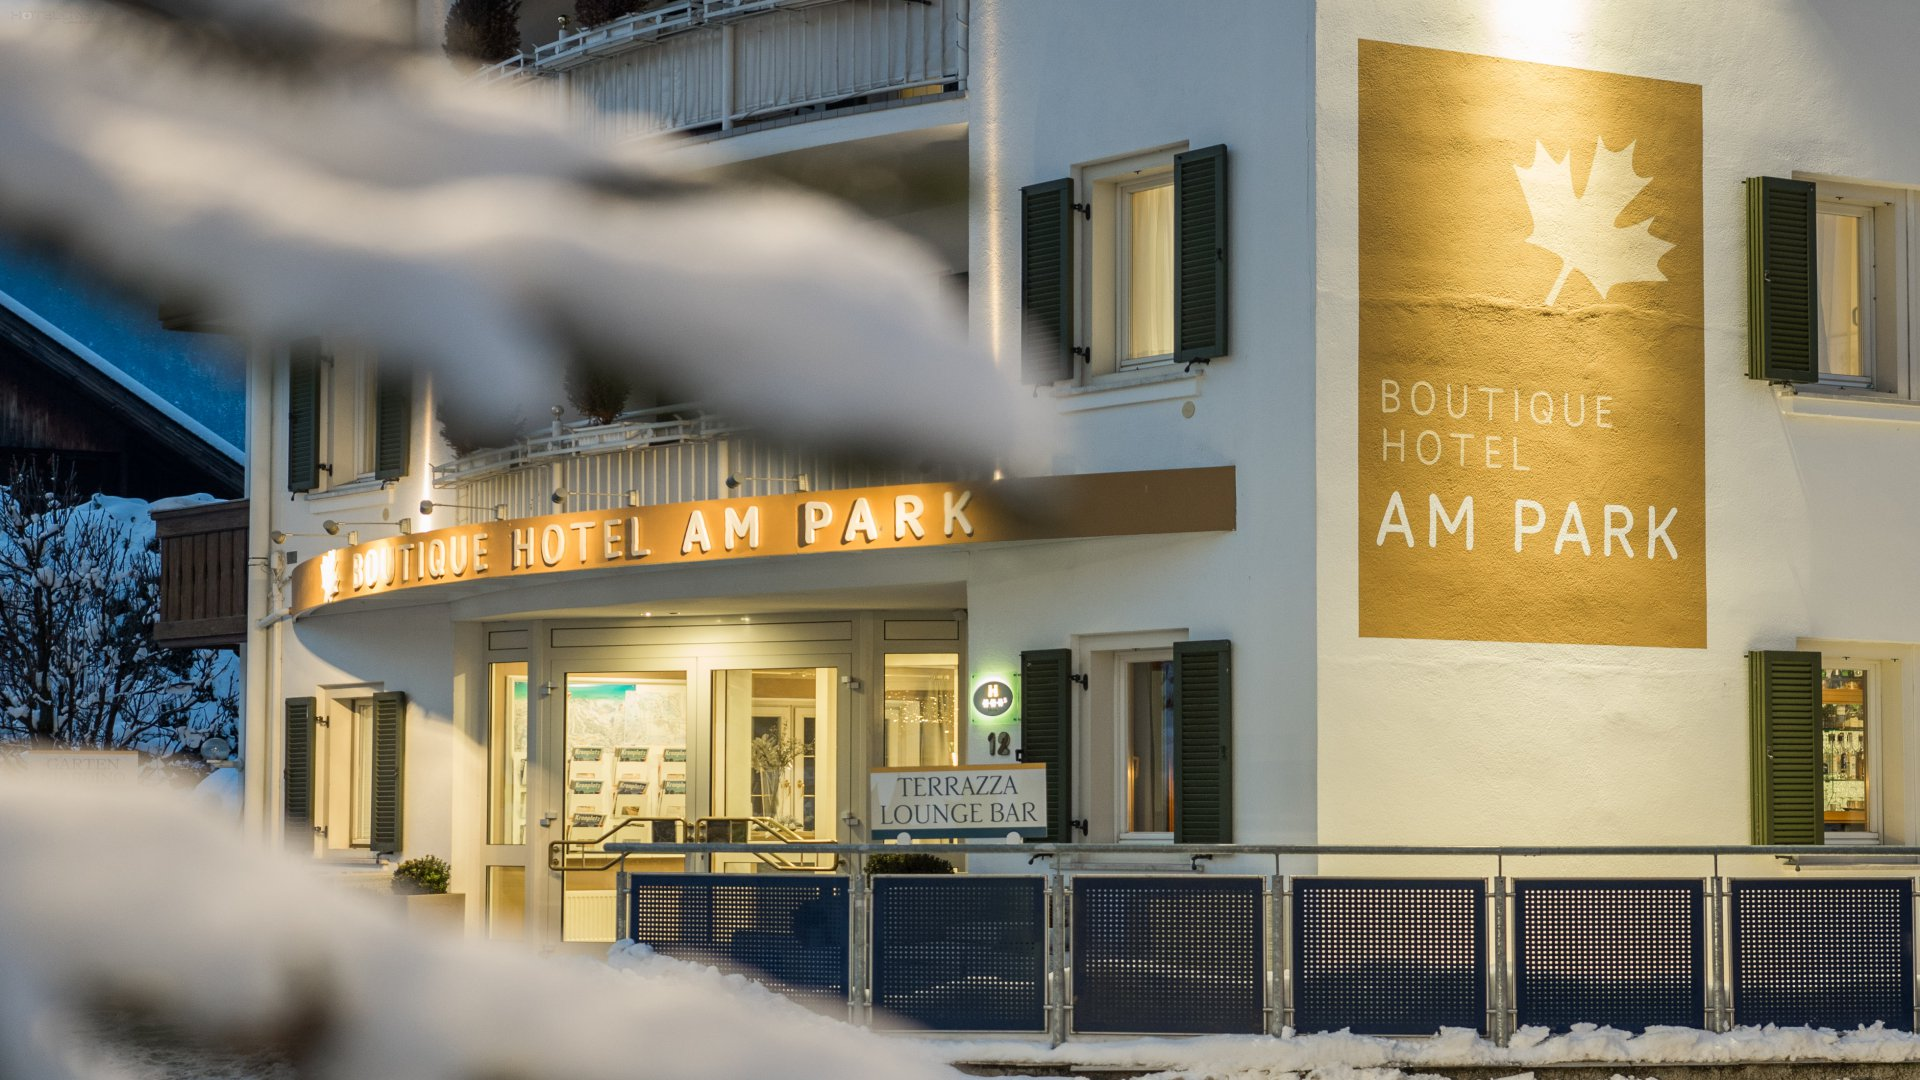 Boutique Hotel Am Park 1